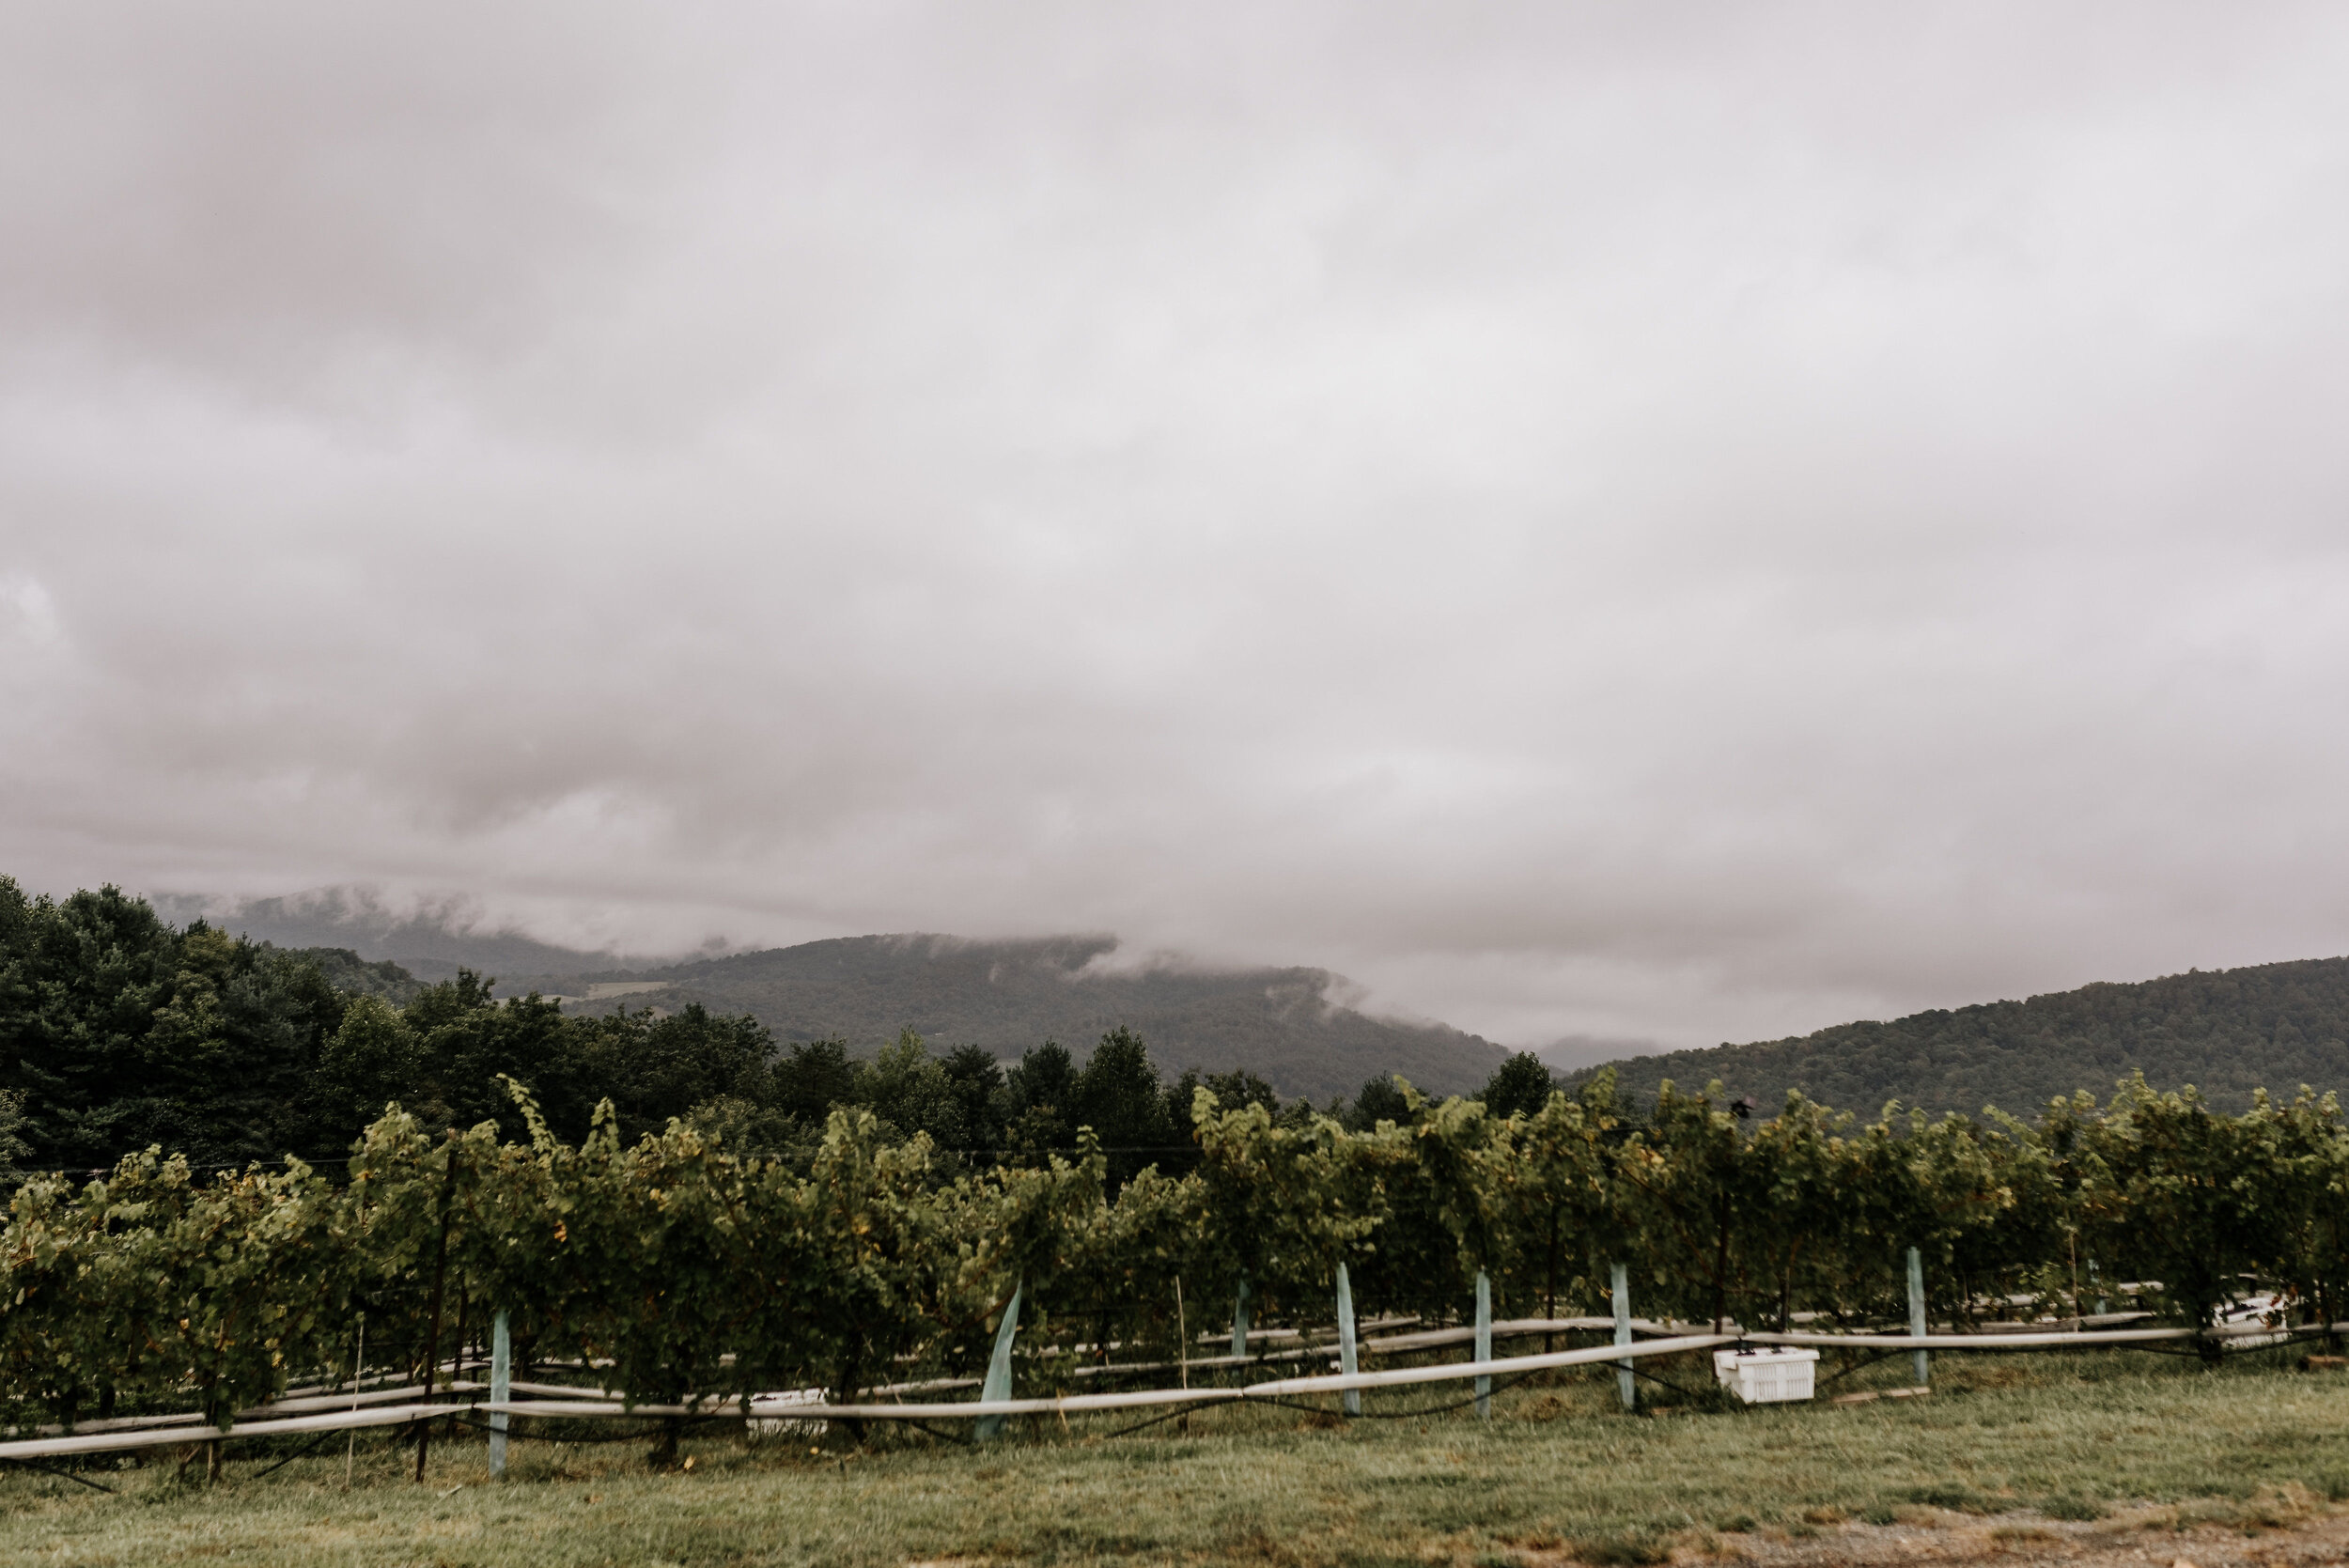 Allison_Nolan_Moss_Vineyards_Wedding_Charlottesville_Virginia_Photography_by_V_1.jpg